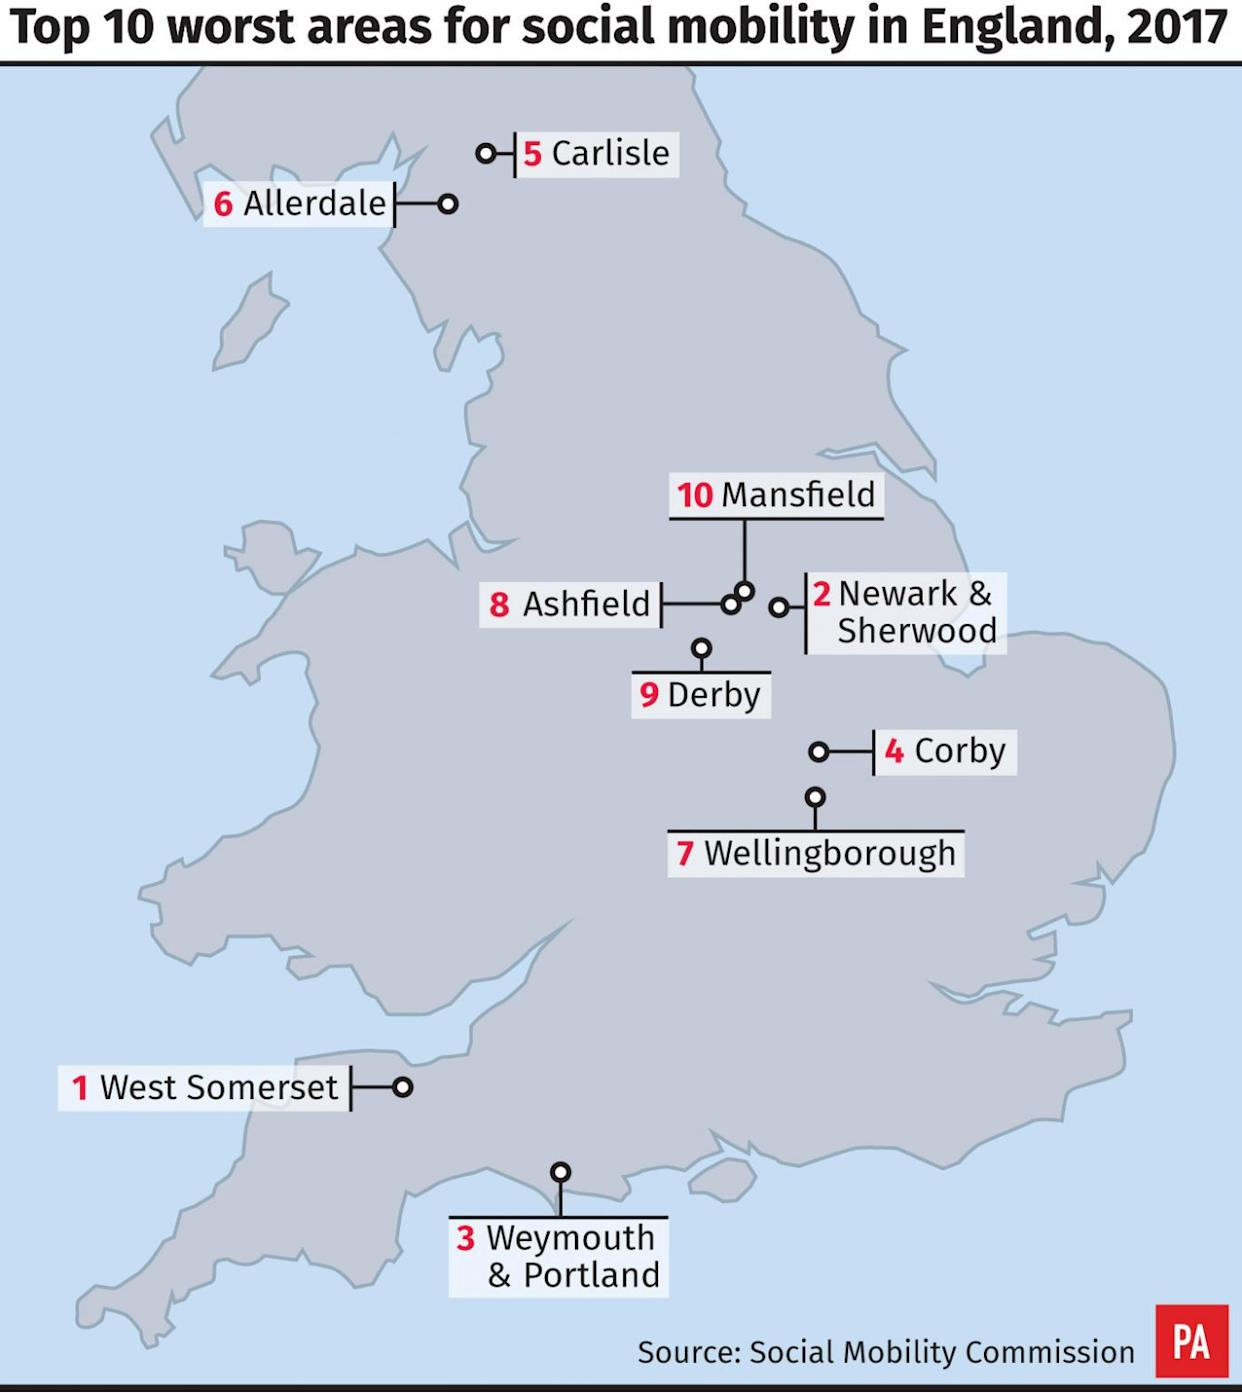 Top 10 worst areas for social mobility in England, 2017